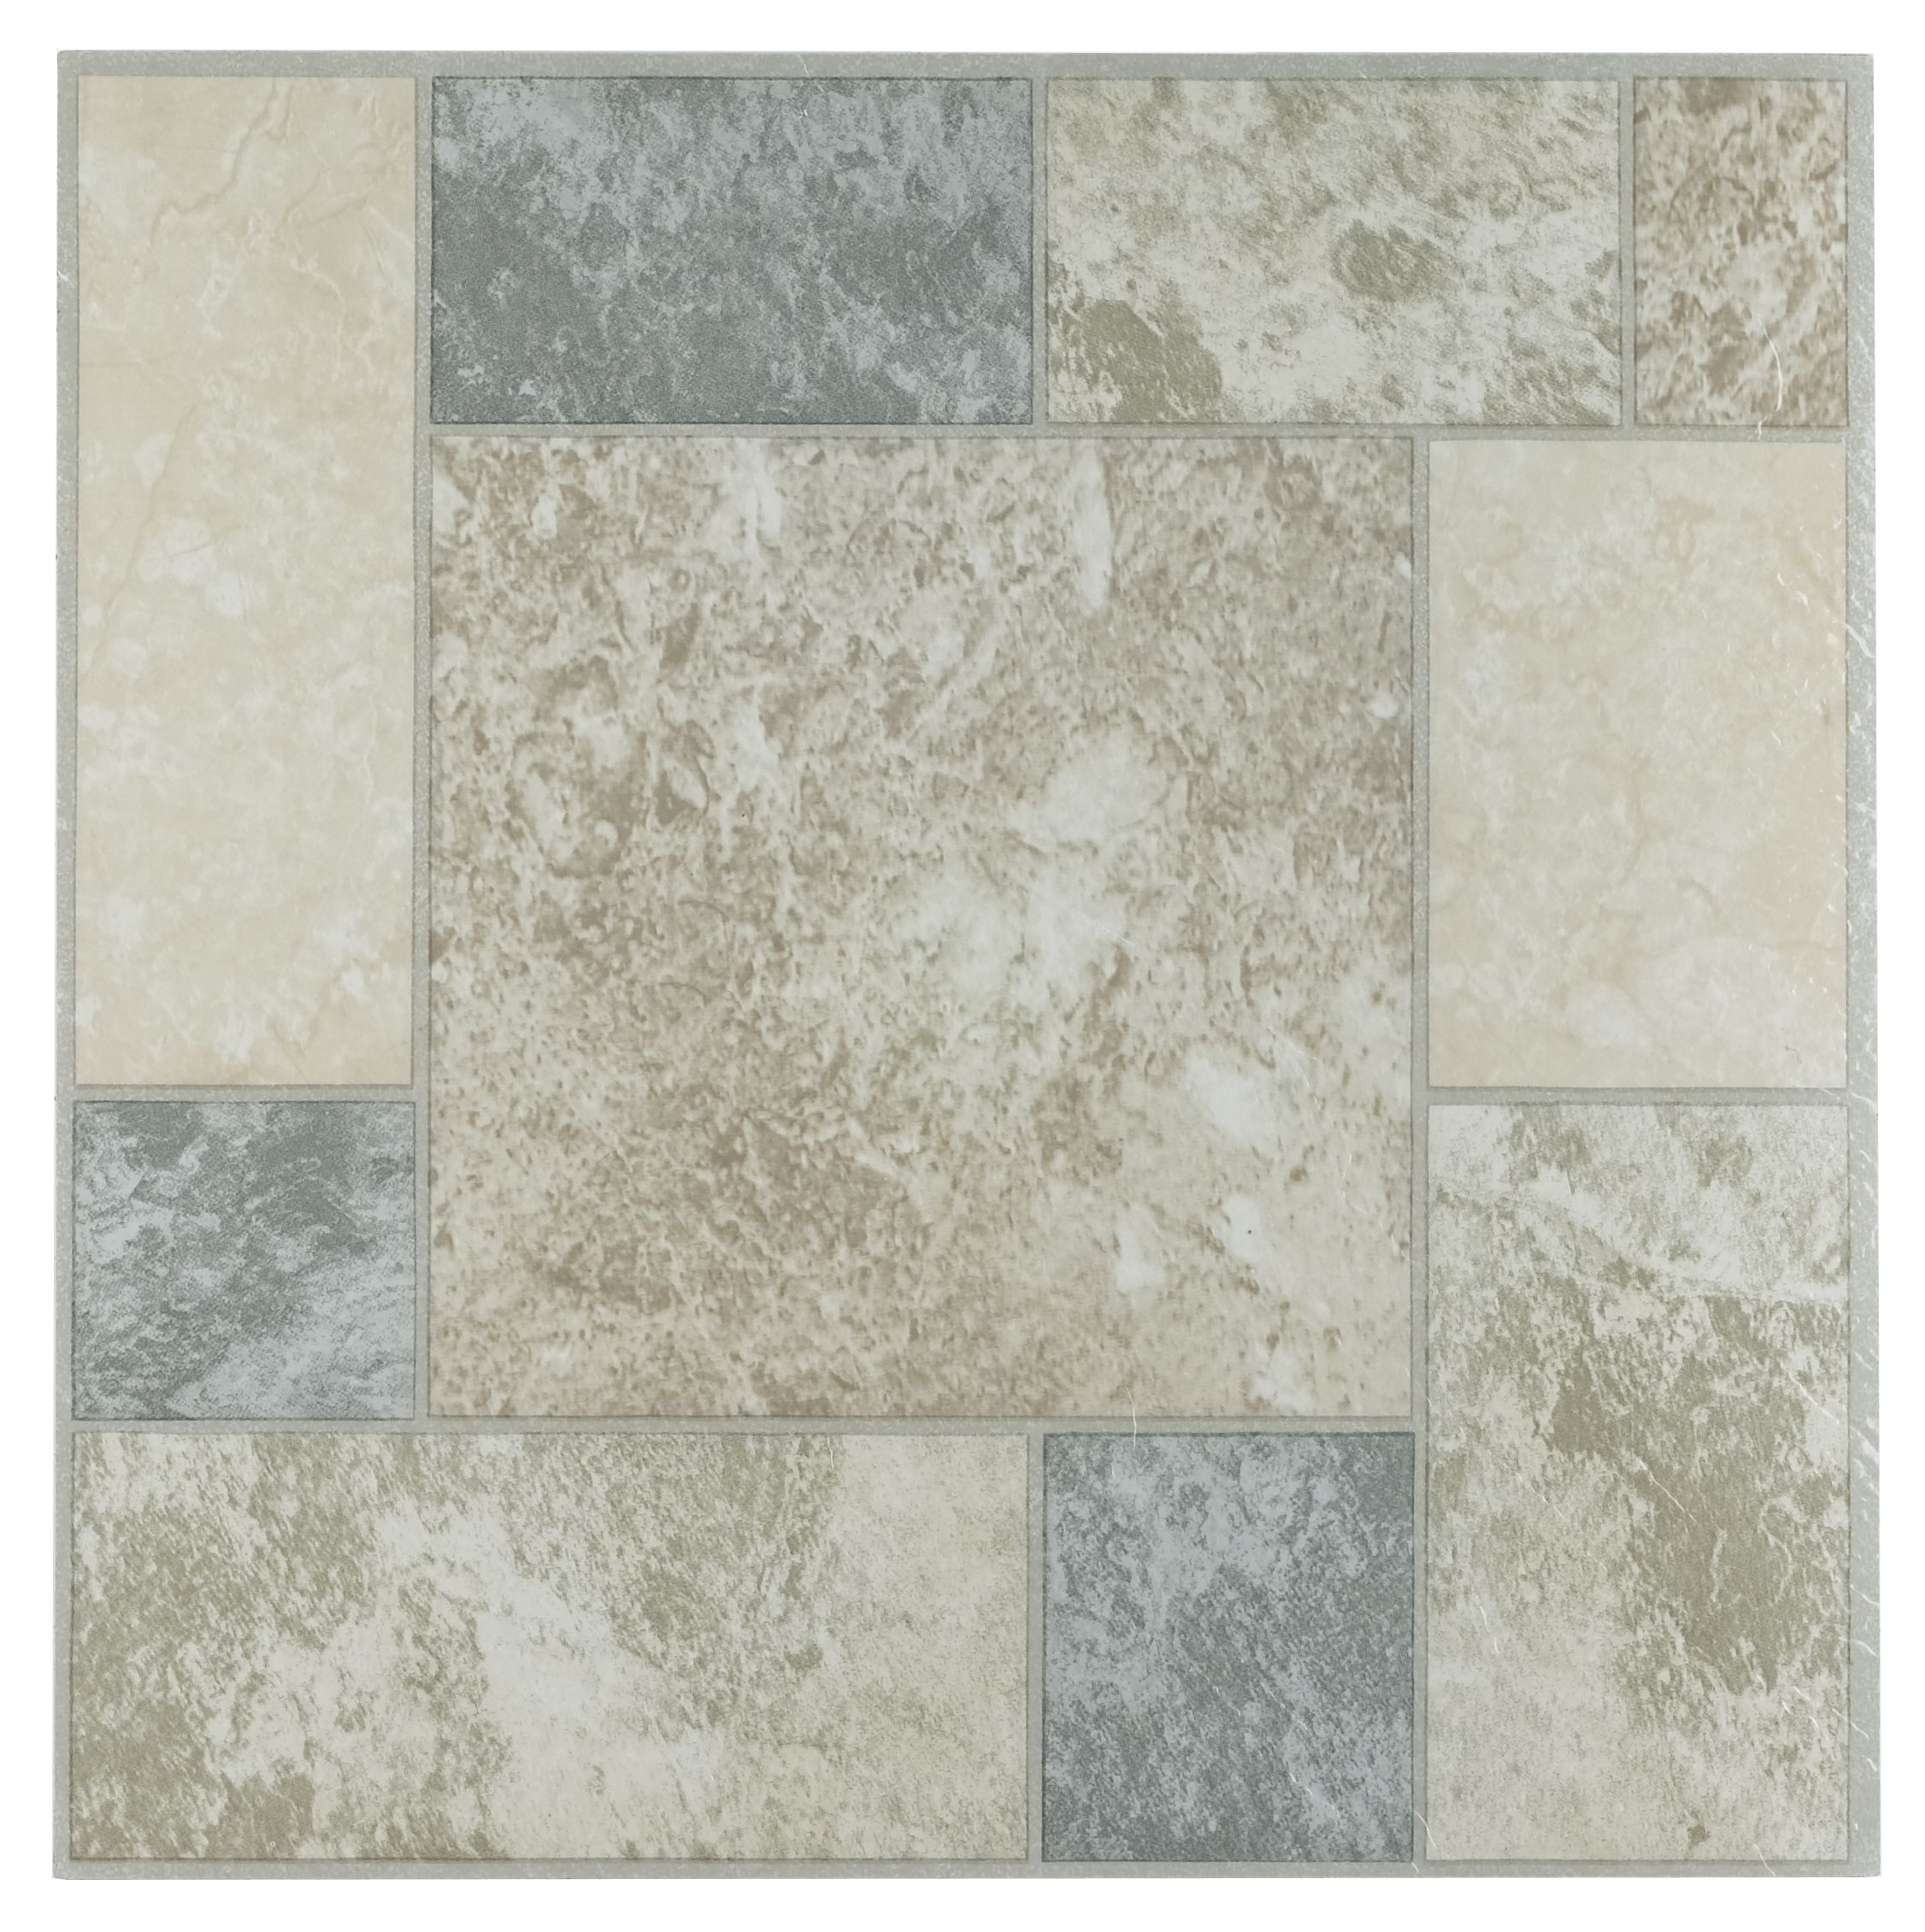 Achim Tivoli Marble Blocks 12x12 Self Adhesive Vinyl Floor Tile 45 Tiles 45 Sq Ft Vinyl Flooring Vinyl Tiles Luxury Vinyl Tile